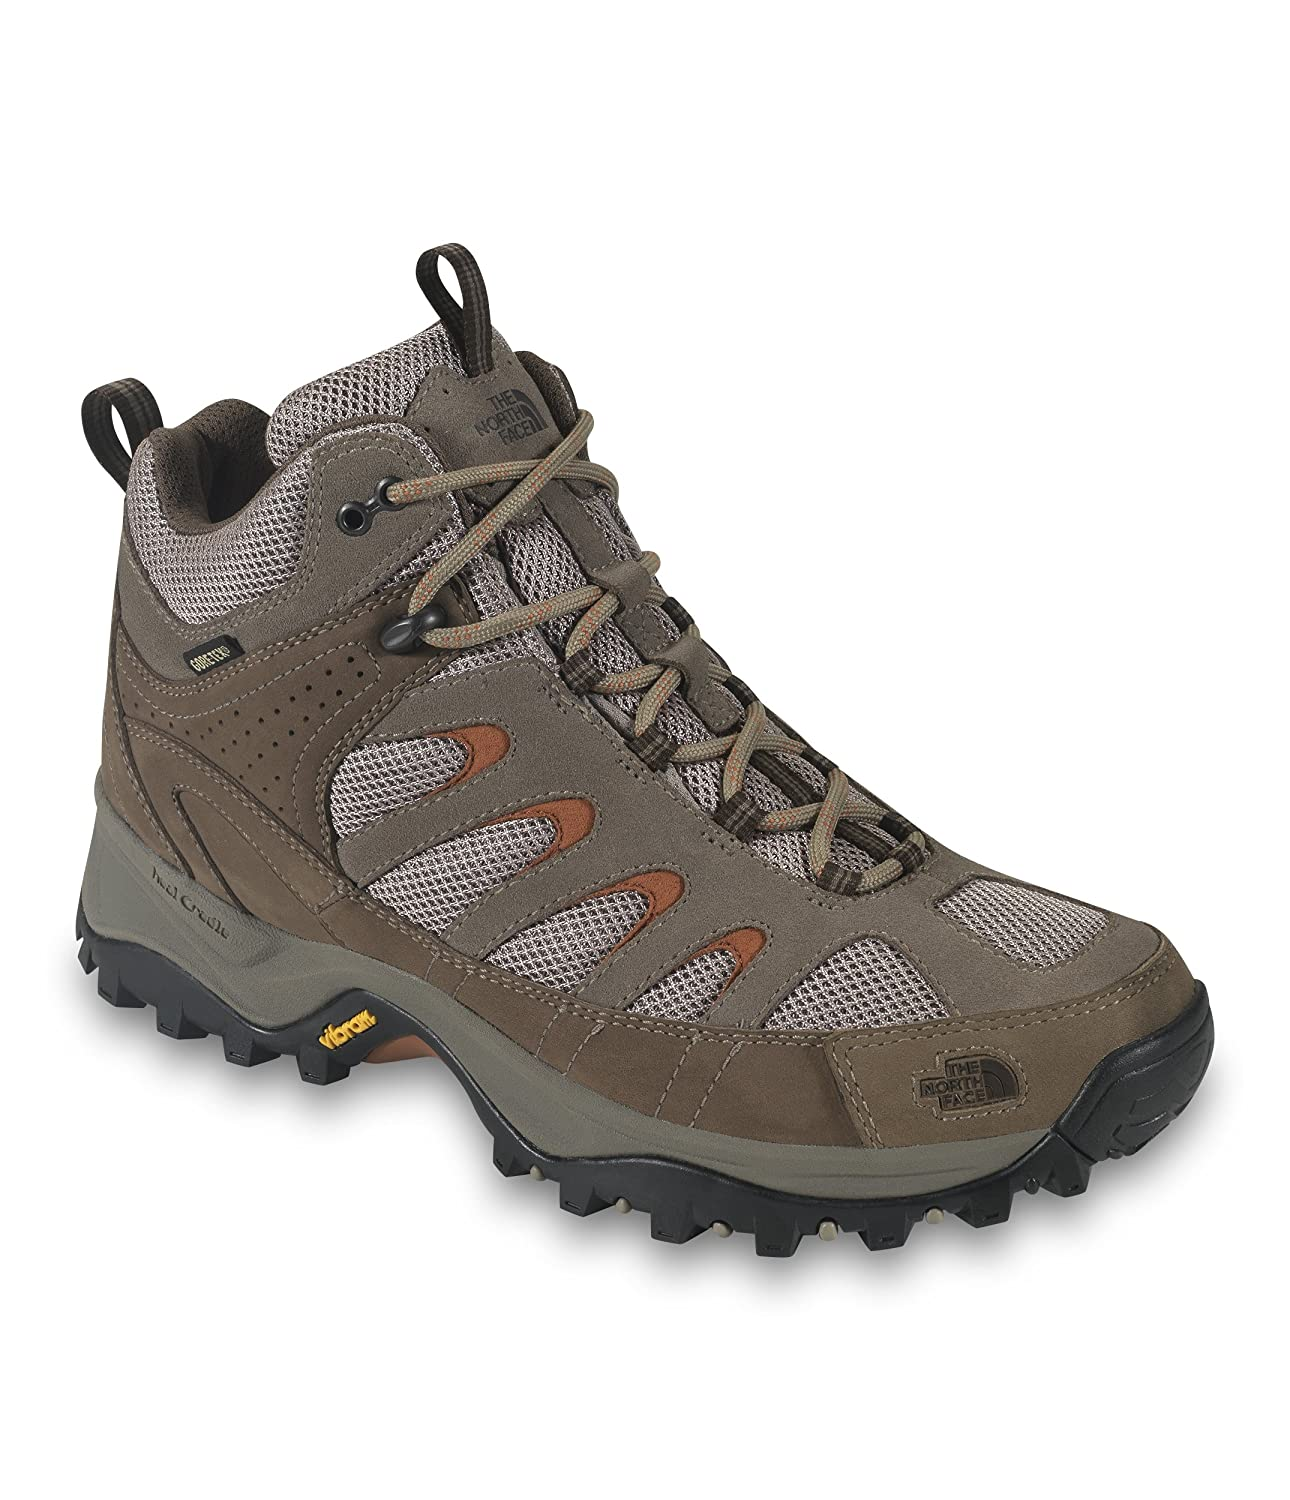 851f2c35a The North Face Crestone Mid GTX XCR - Color: Elixir Brown/Bombay ...